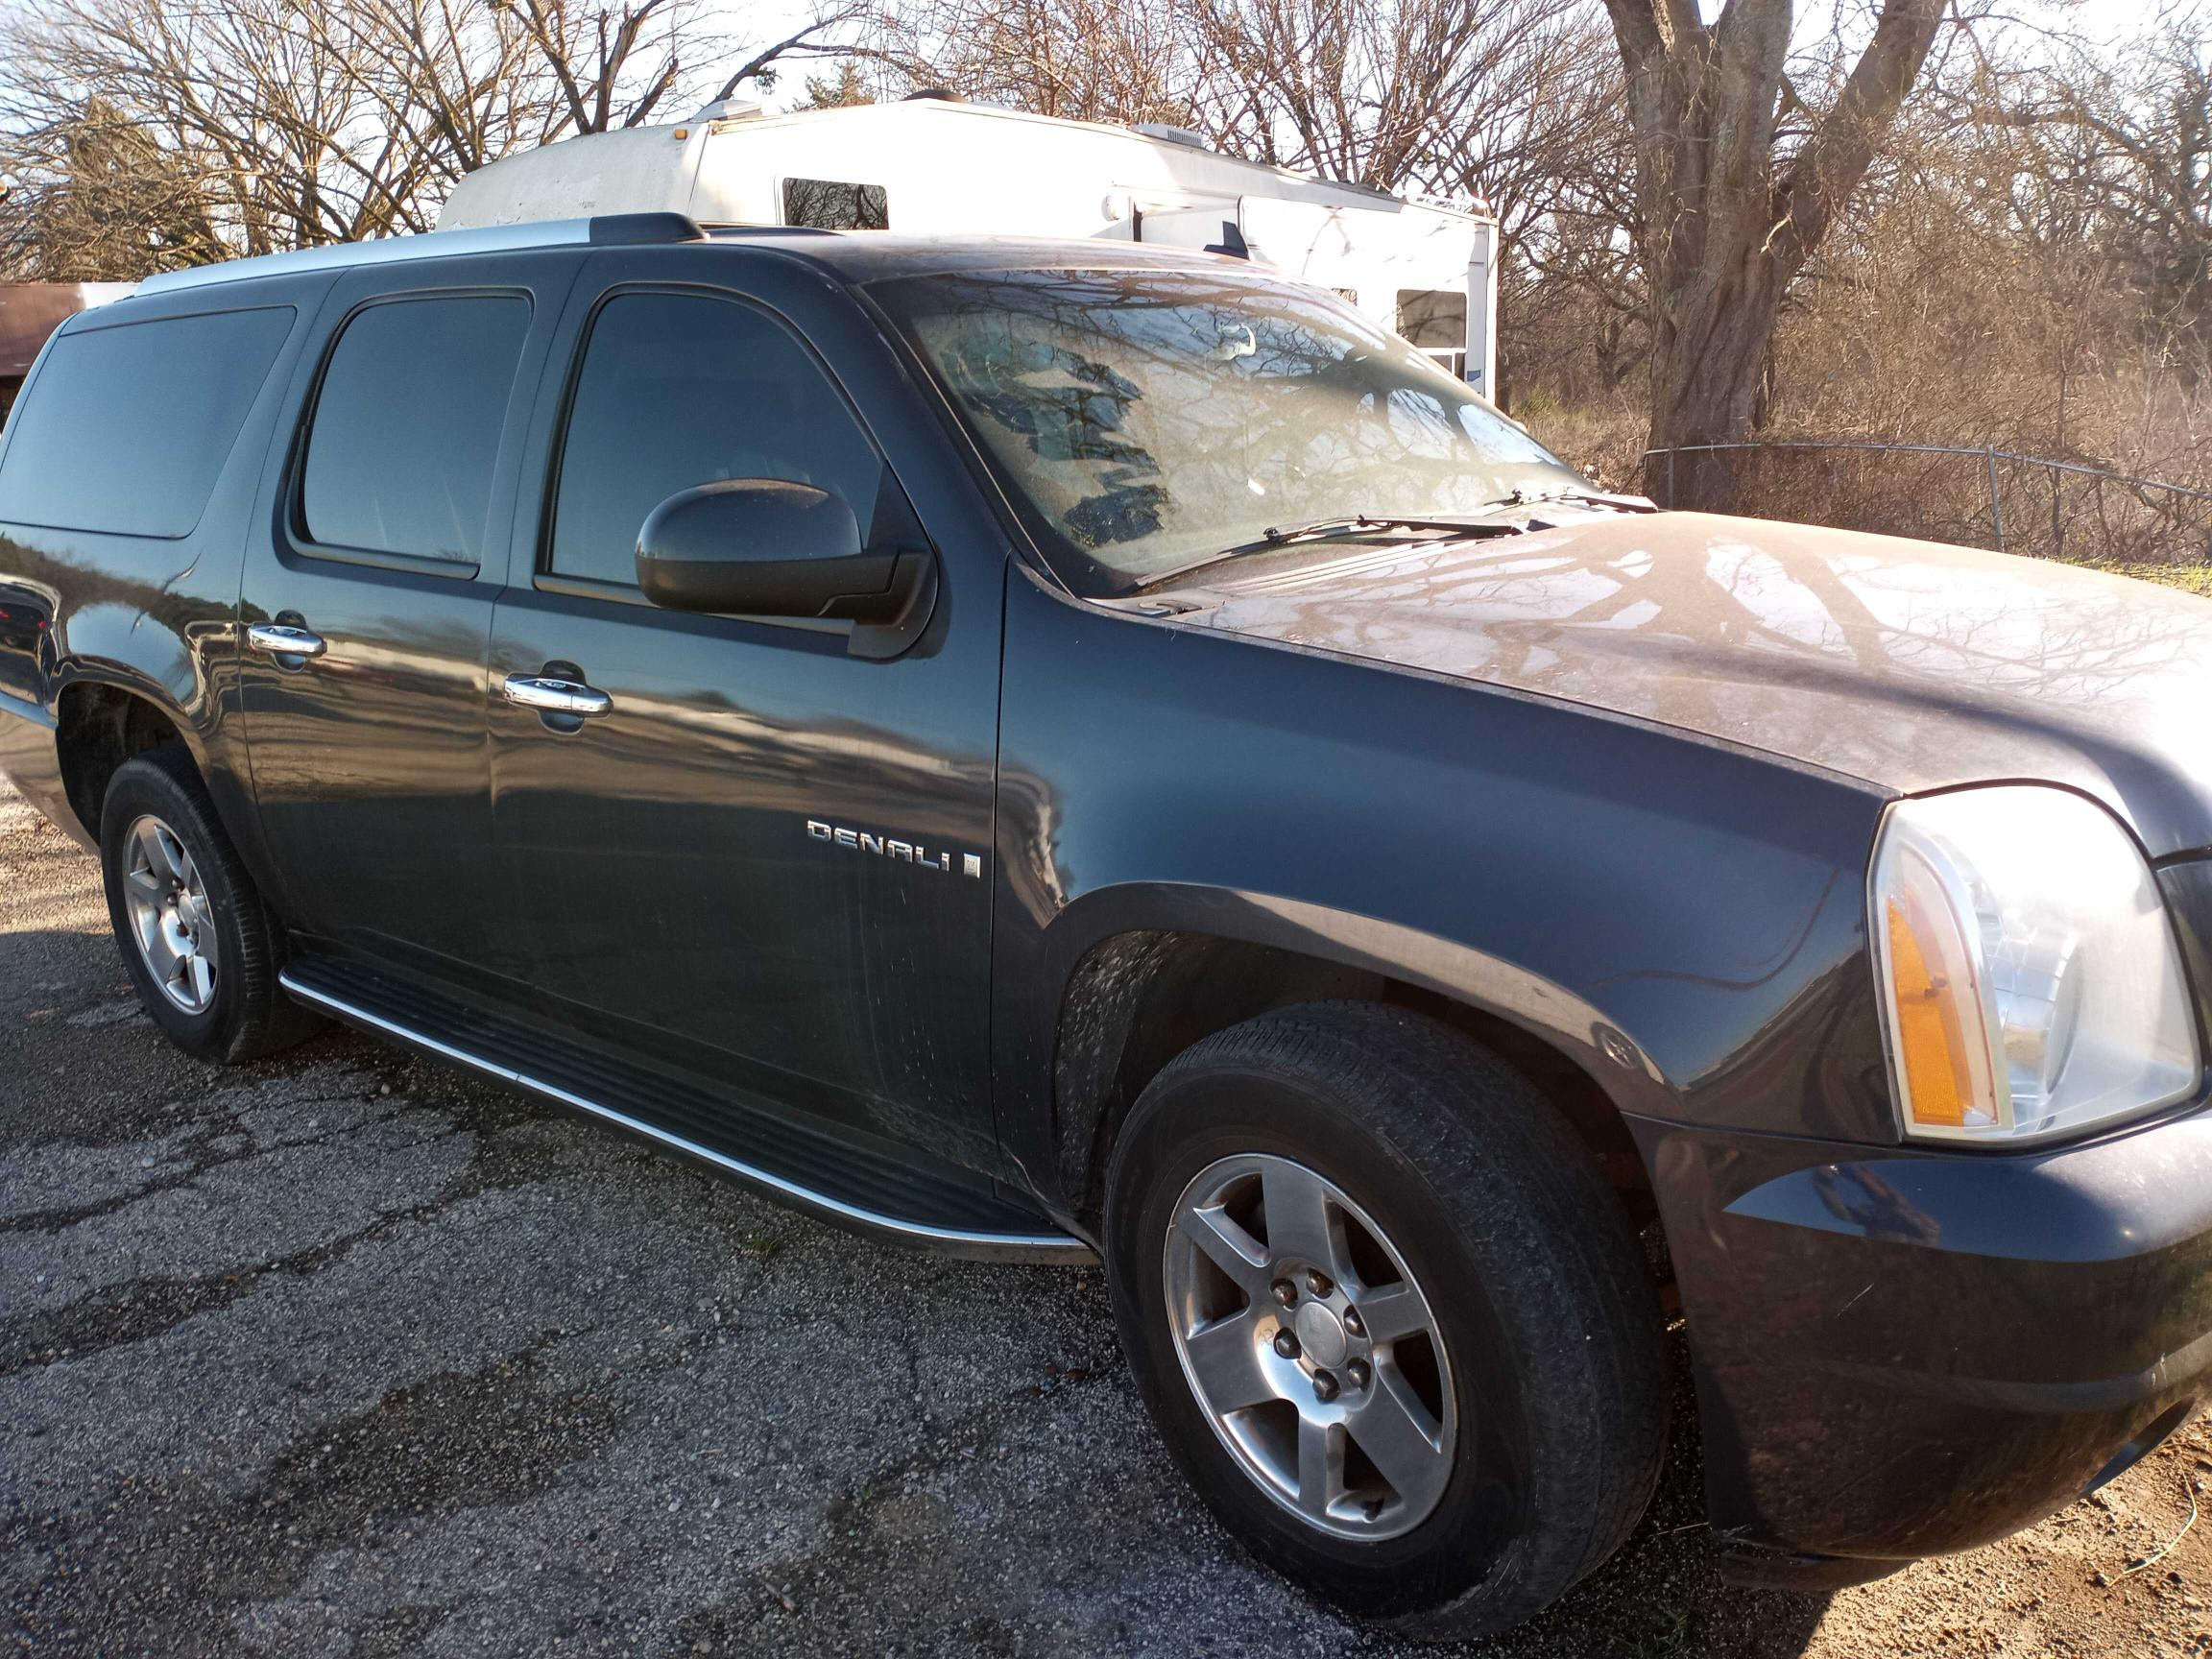 GMC salvage cars for sale: 2008 GMC Yukon XL D